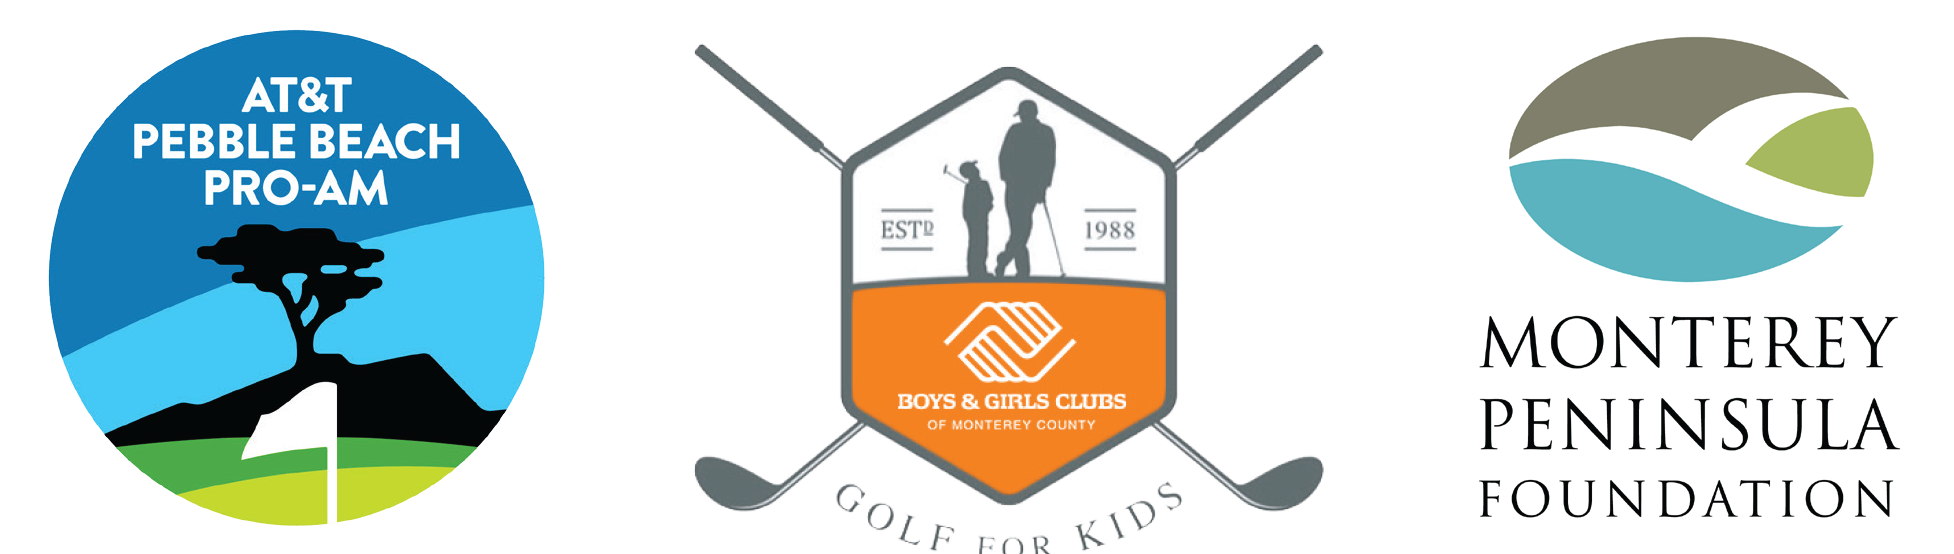 Golf with friends logo png. For kids bgcmc colleagues